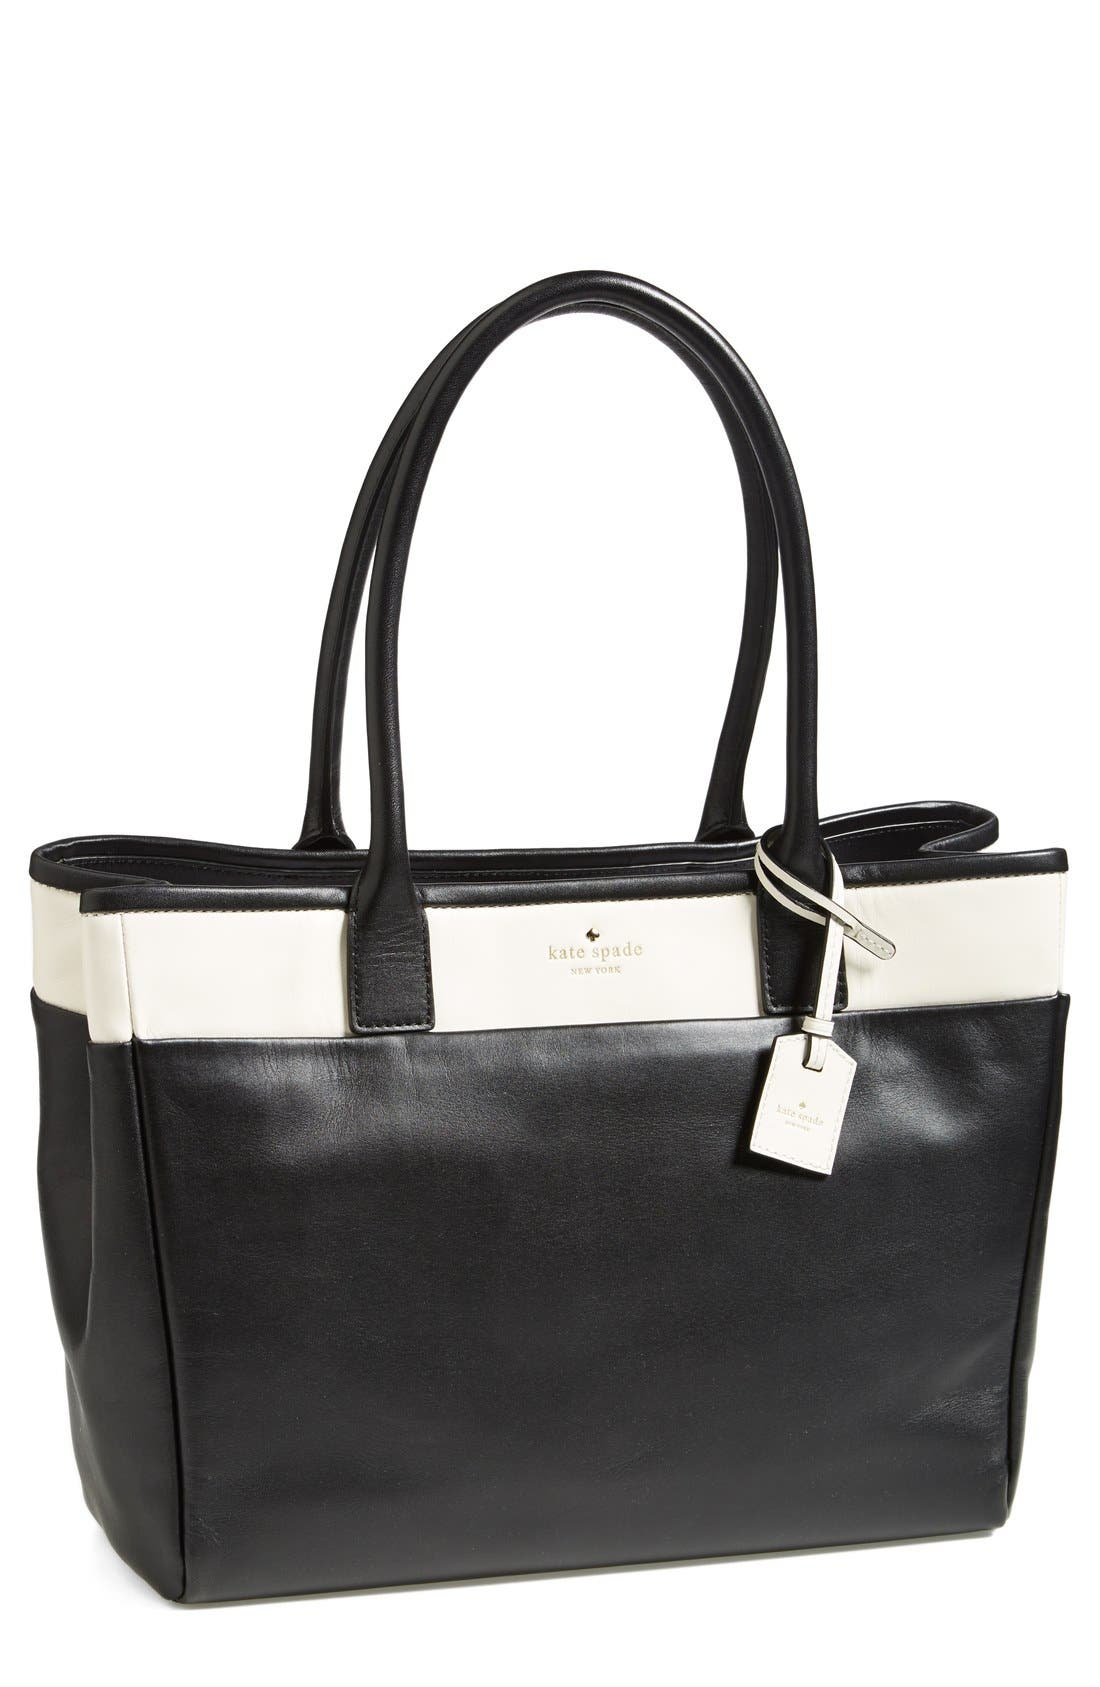 Main Image - kate spade new york 'branton square - healy' tote (Nordstrom Exclusive)